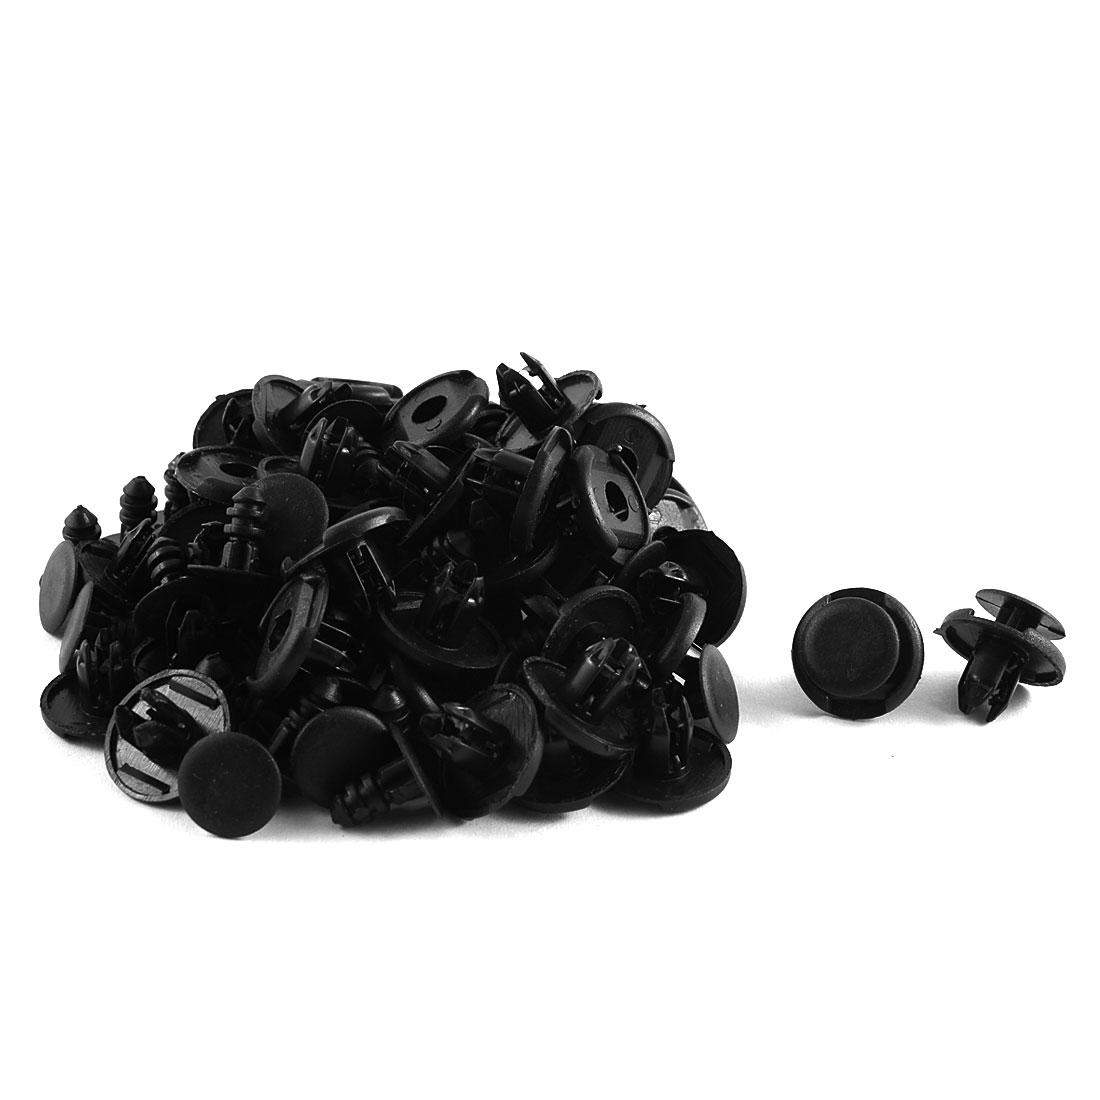 50 Pcs Black Plastic Rivet Trim Clips for Wheel Arch Linings 8mm x 19mm x 10mm